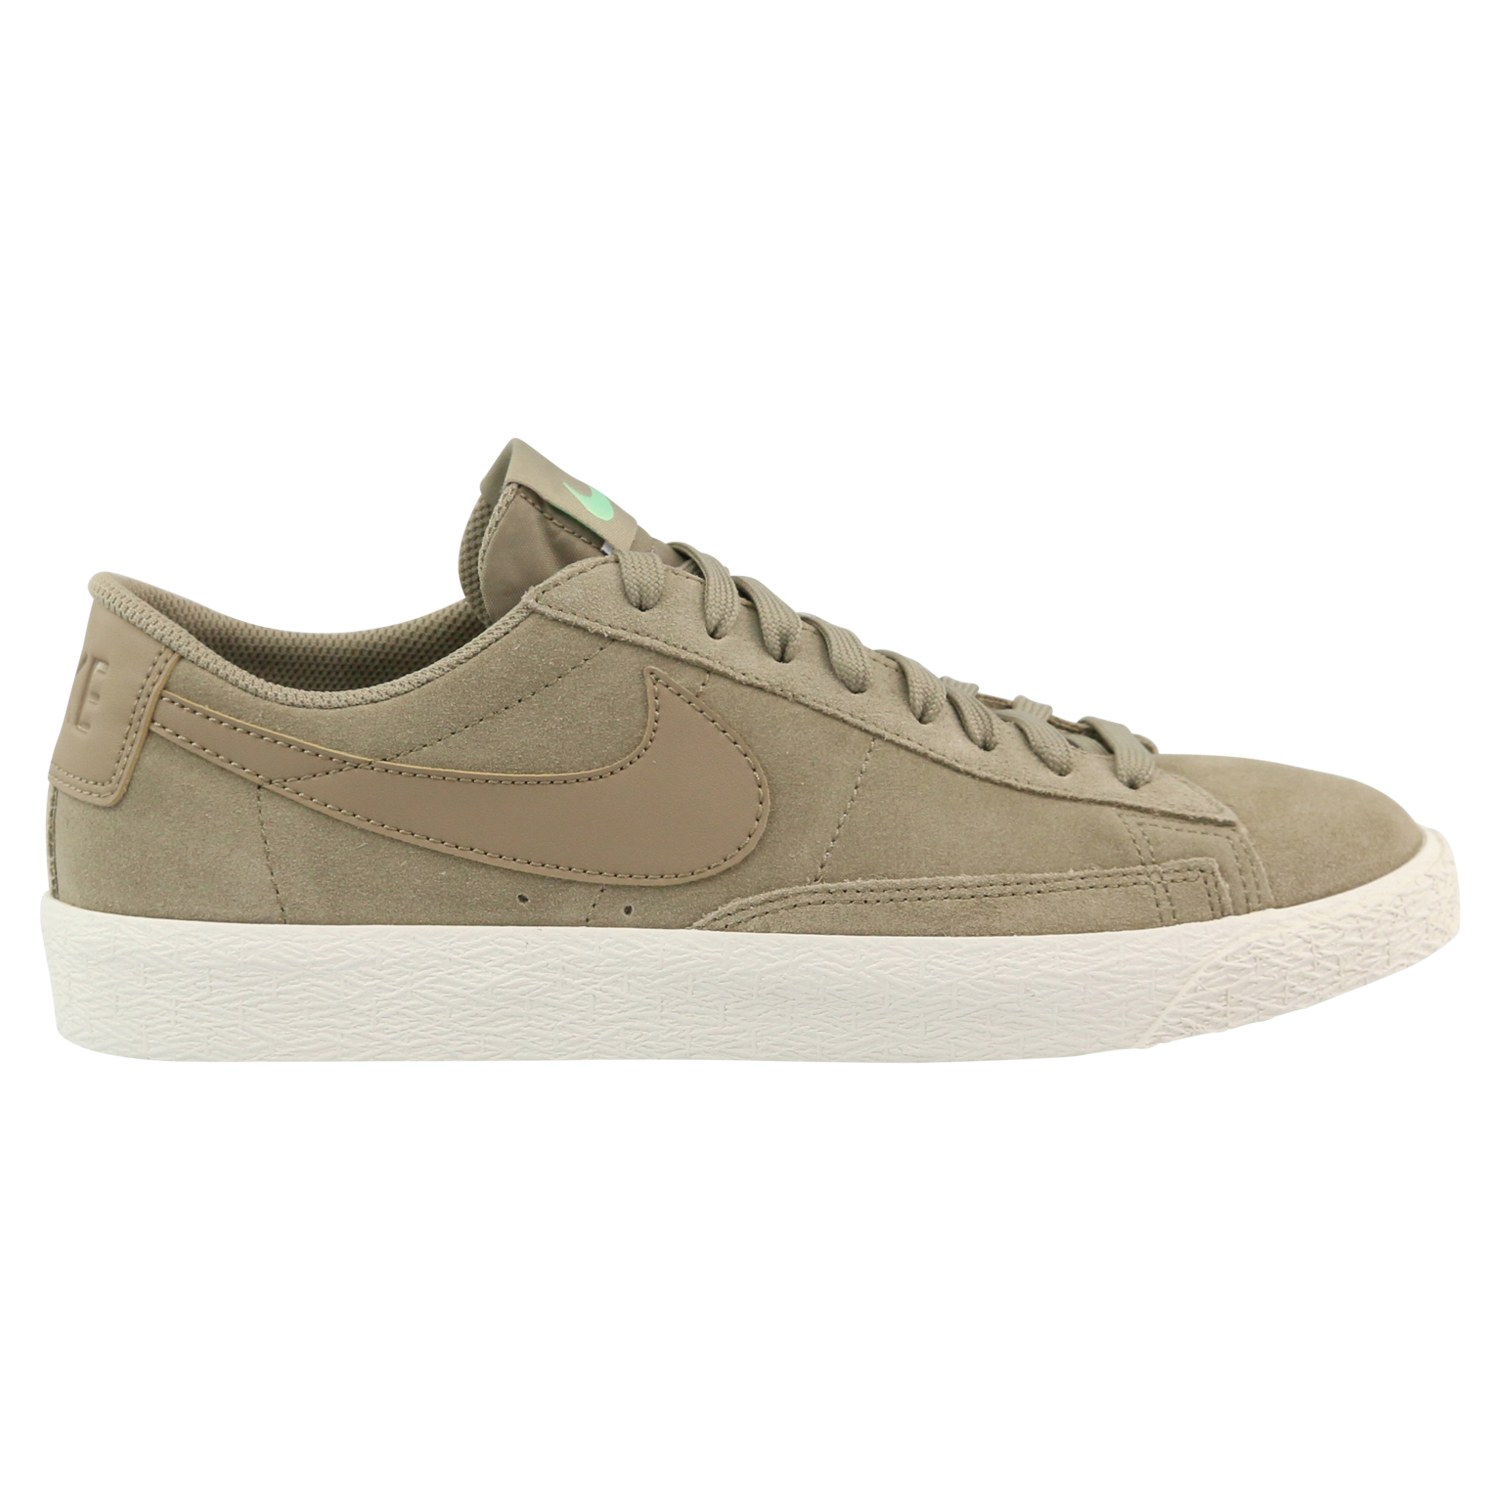 nike blazer low herren sneaker schuhe turnschuhe khaki. Black Bedroom Furniture Sets. Home Design Ideas